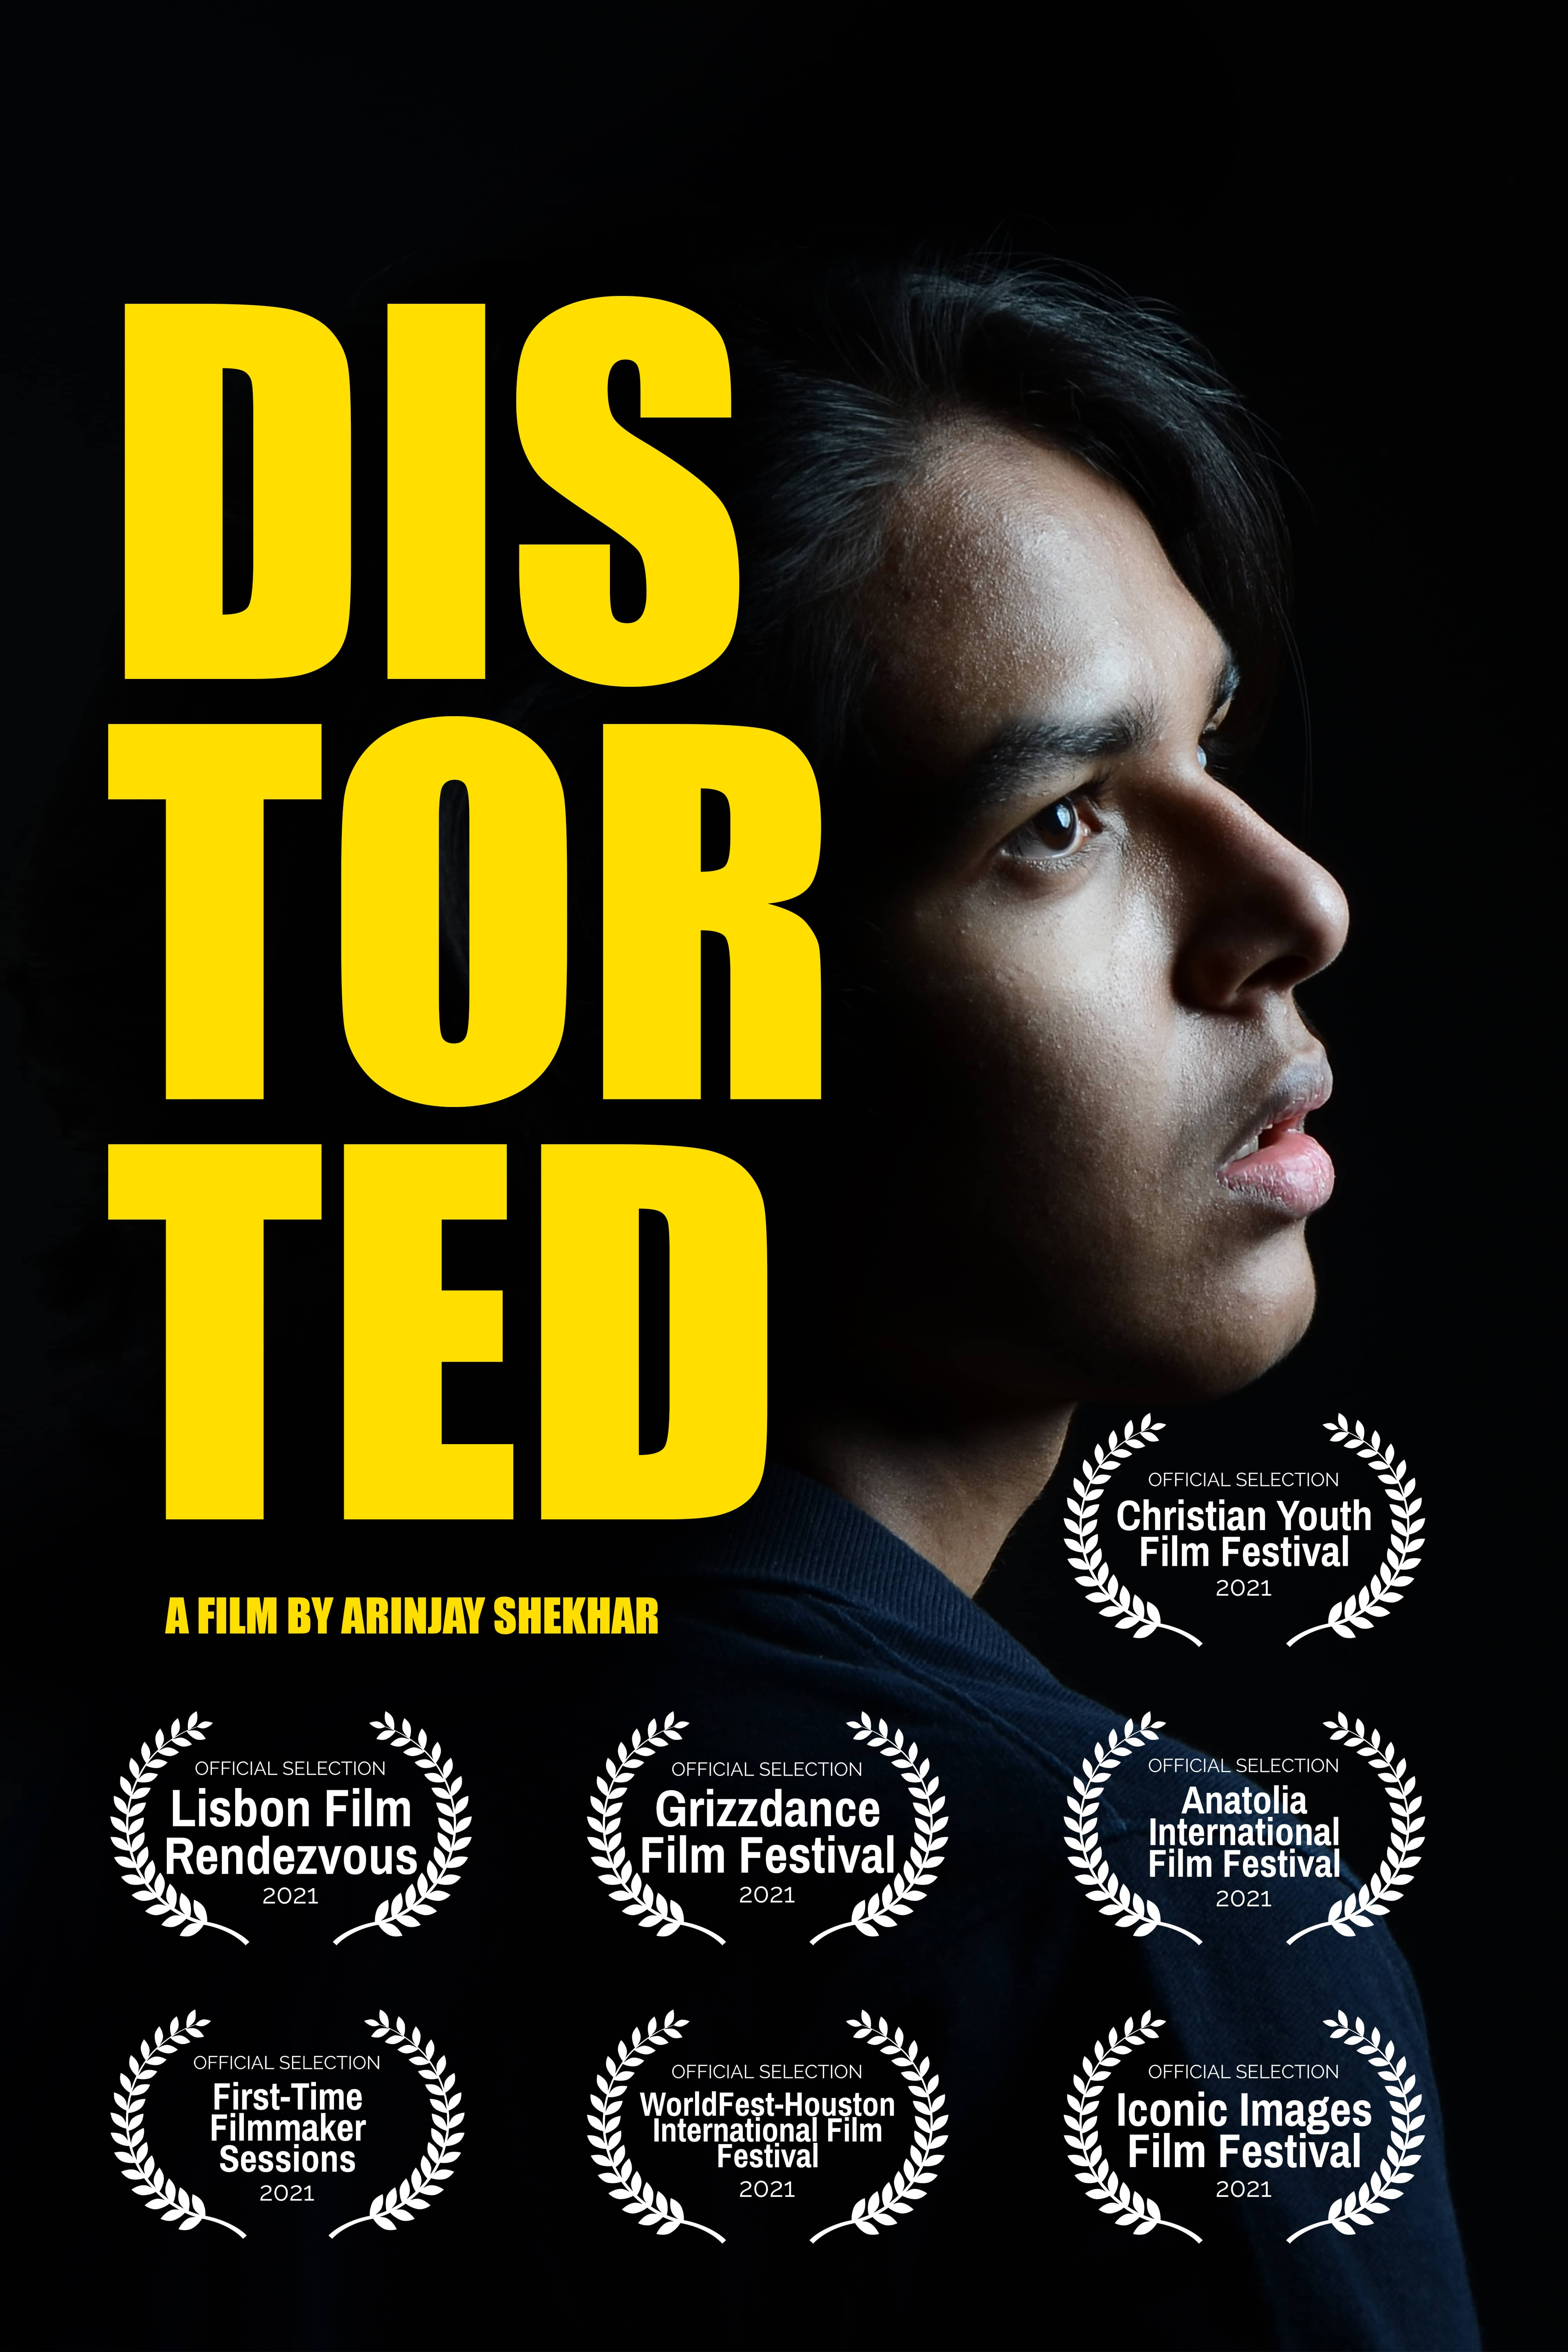 A poster of a short film called distorted.